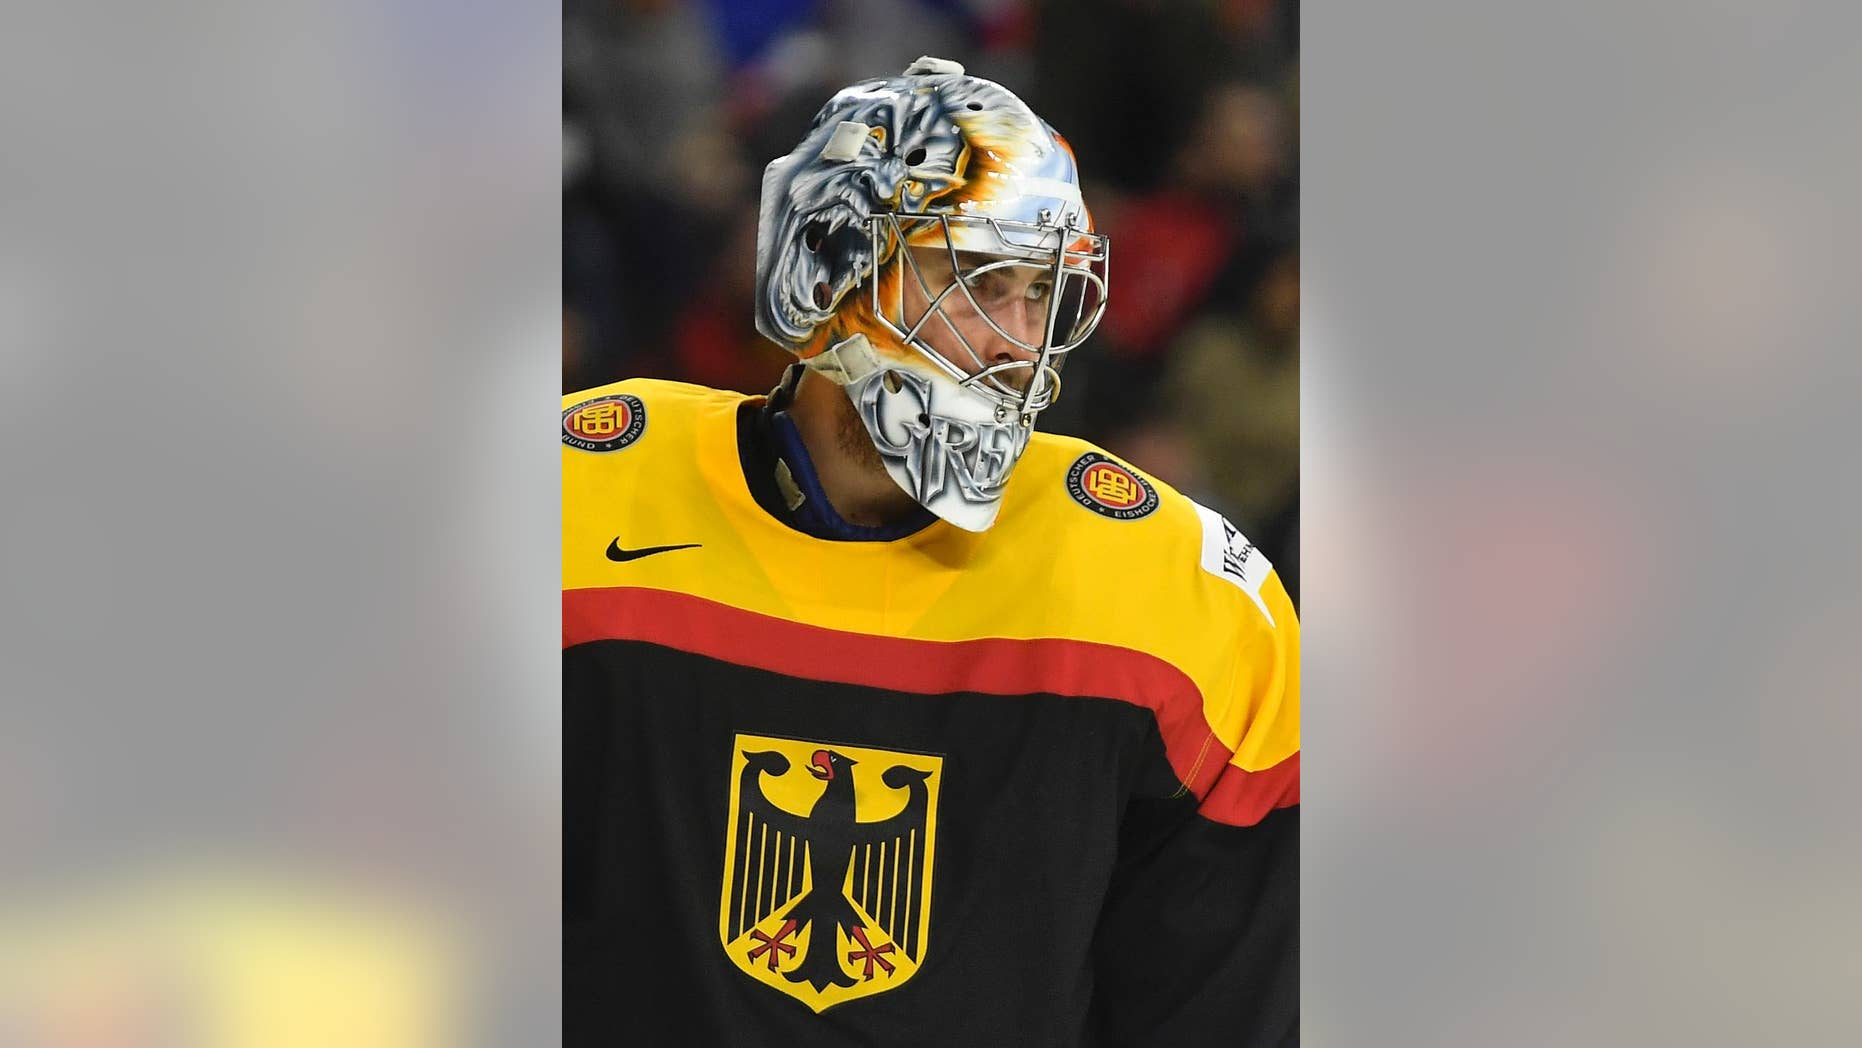 Germany's goalkeeper Thomas Greiss watches disappointed under his mask during the Ice Hockey World Championships group A match between Germany and Russia at the LANXESS arena in Cologne, Germany, Monday, May 8, 2017. (AP Photo/Martin Meissner)